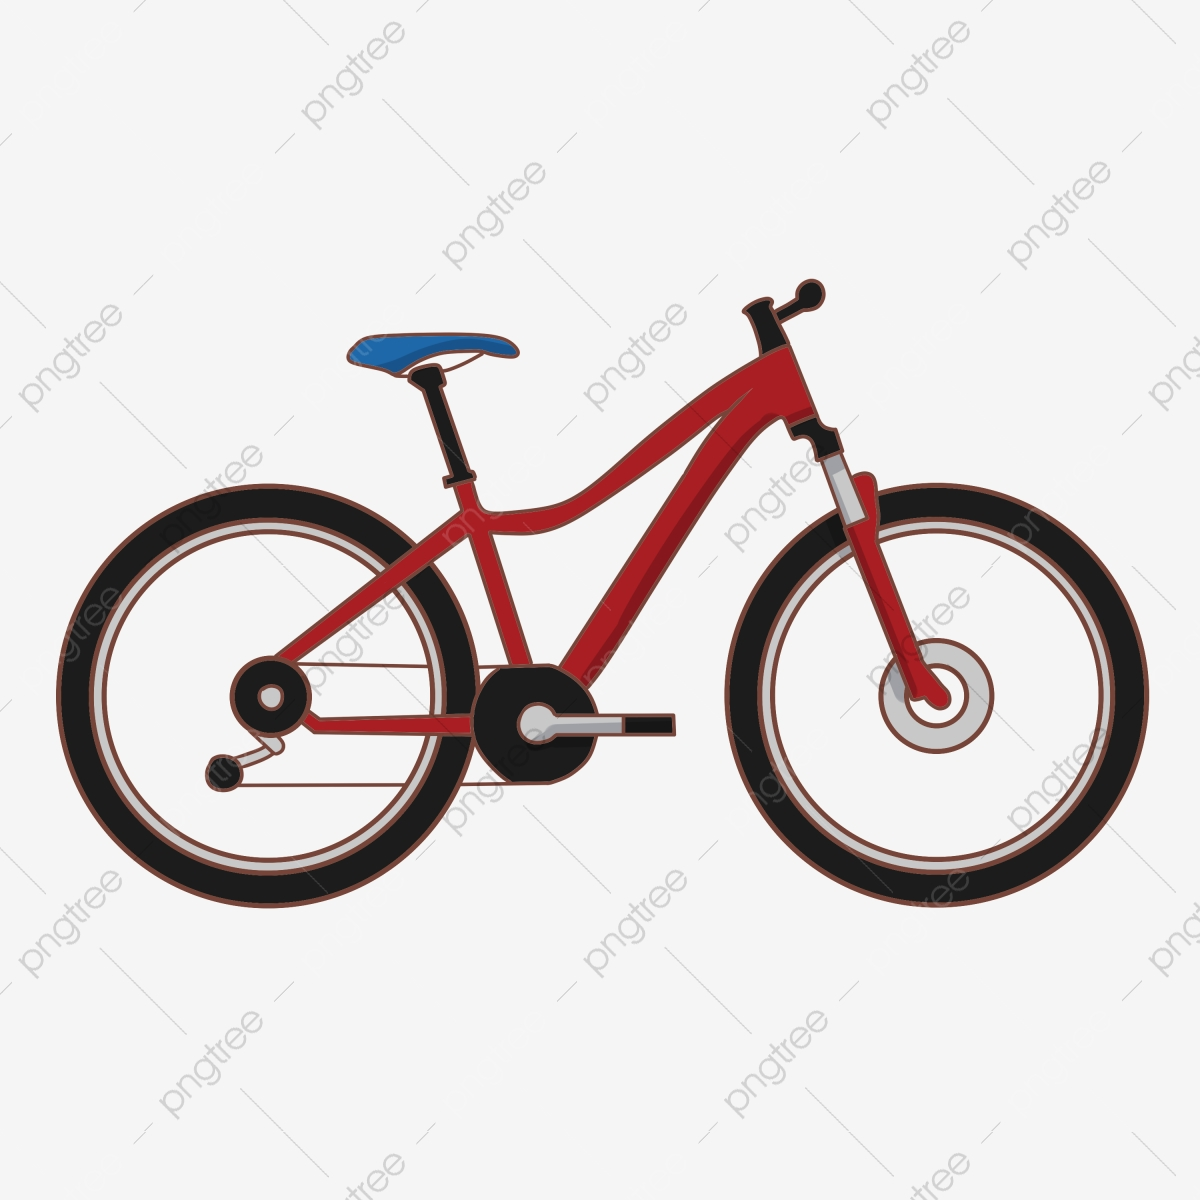 Cycle clipart red bike, Cycle red bike Transparent FREE for.